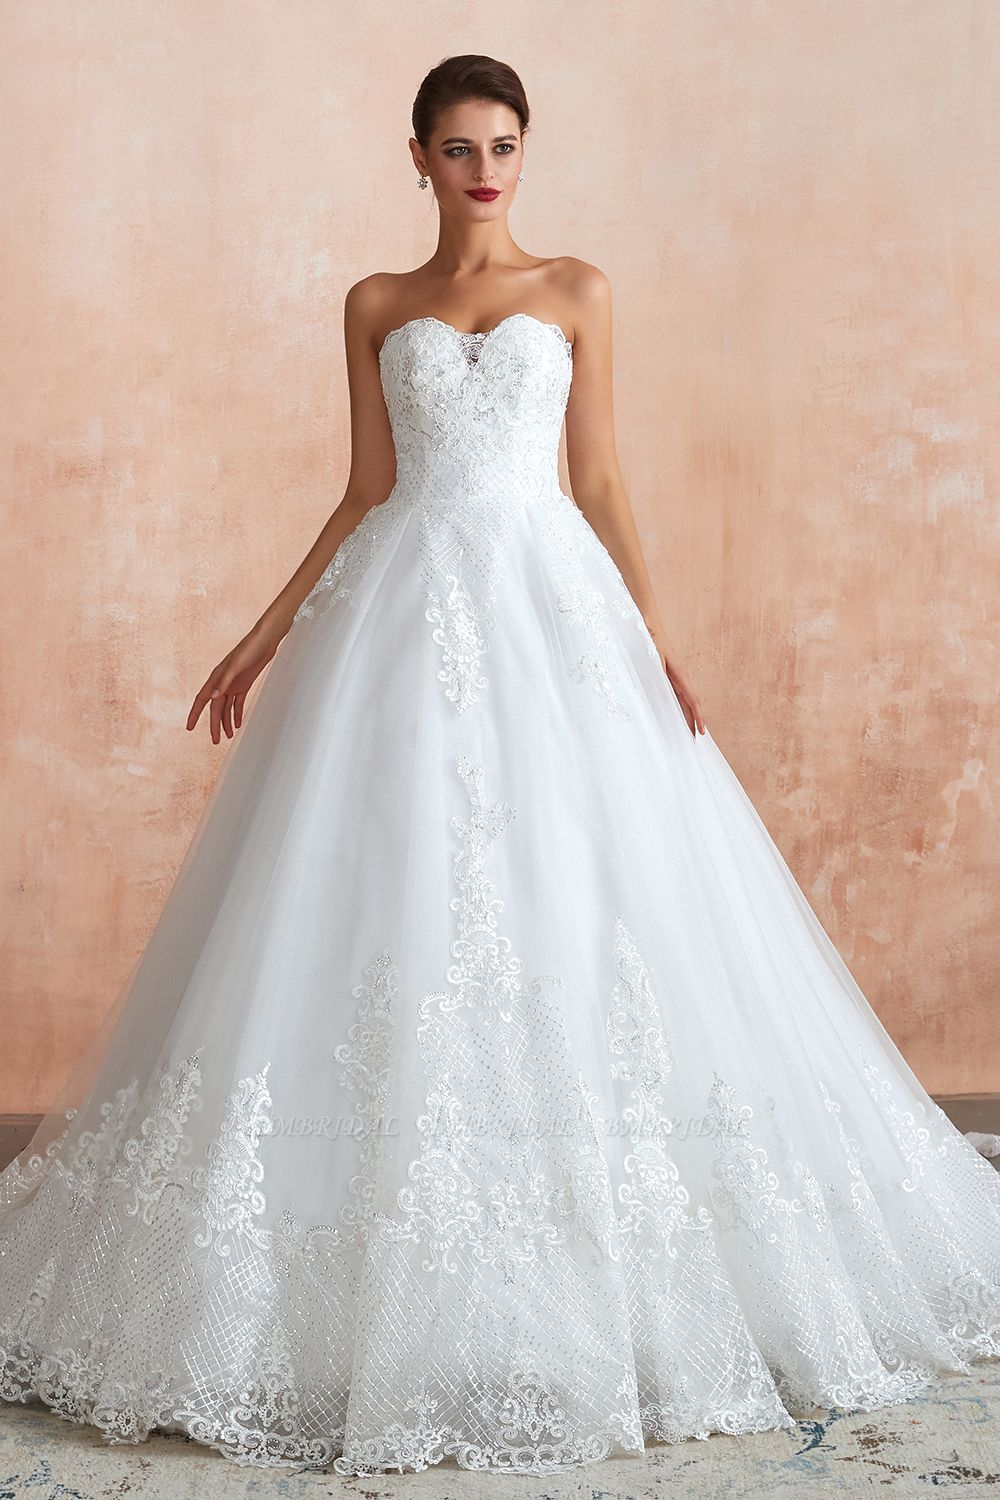 Stylish Strapless White Lace Cheap Wedding Dress Online with Low Back